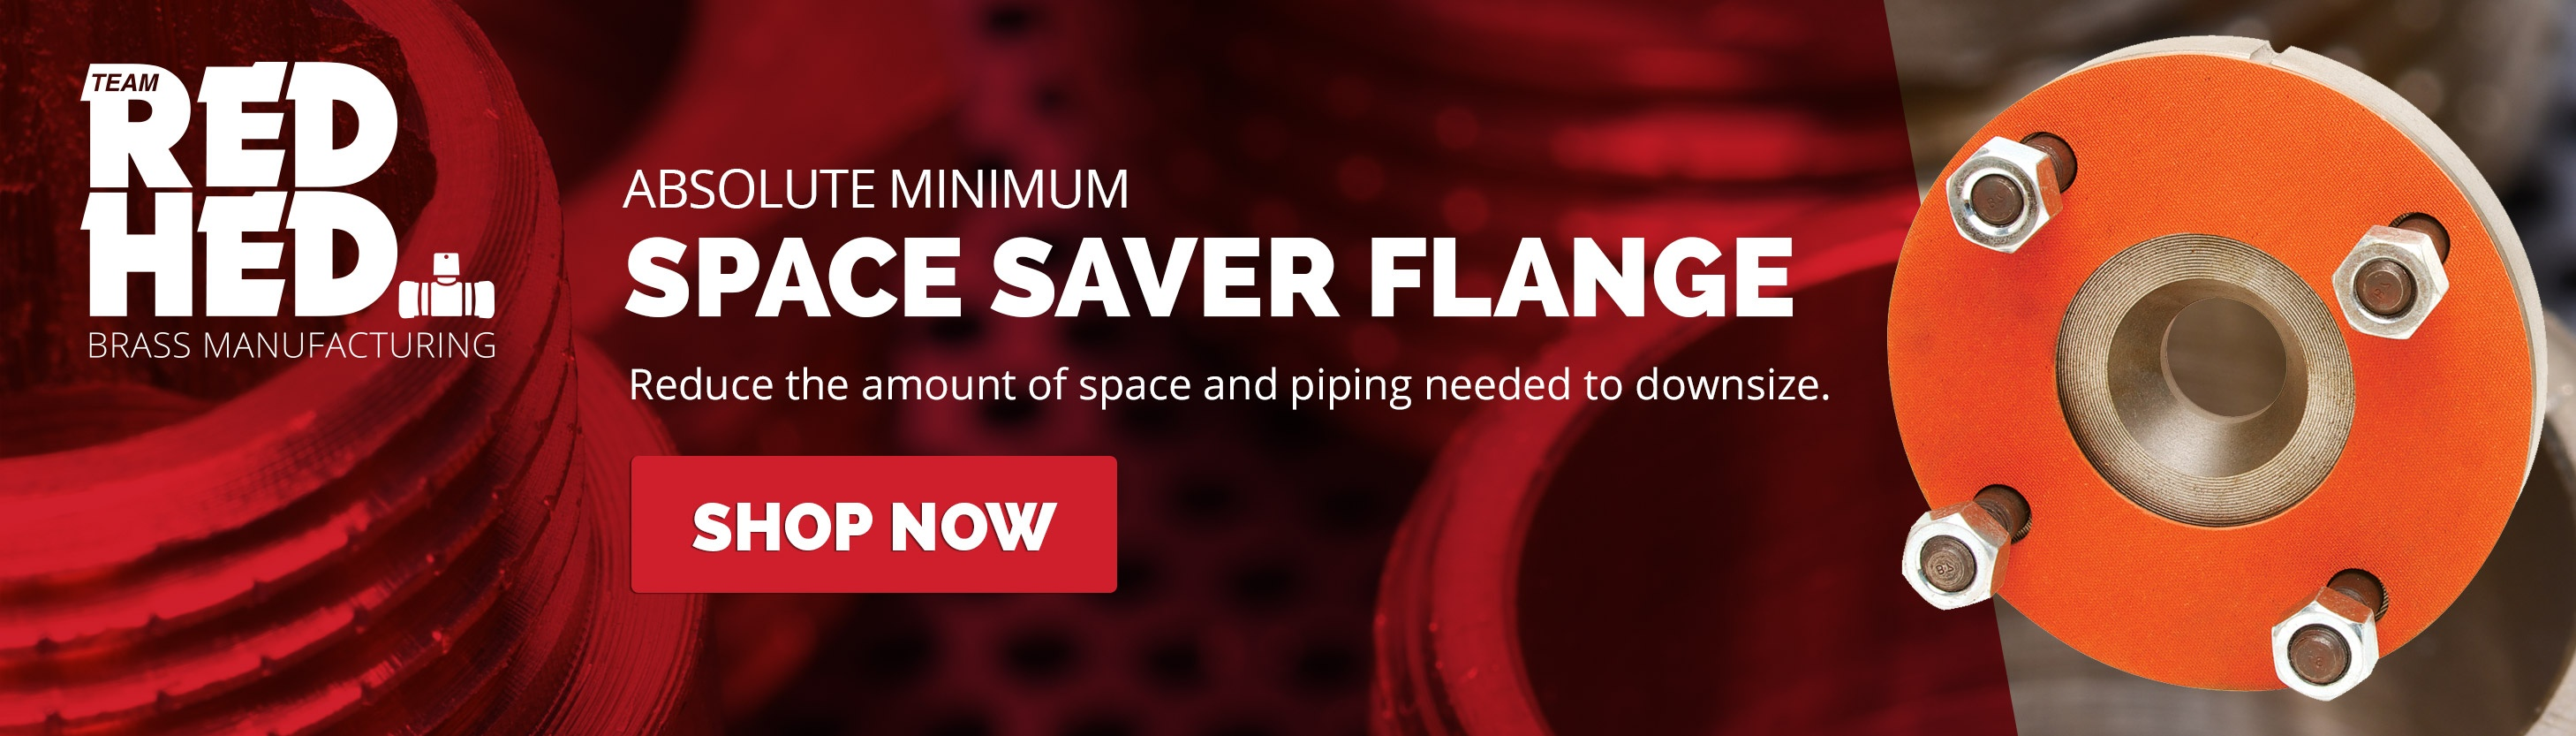 Space Saver Flanges CTA